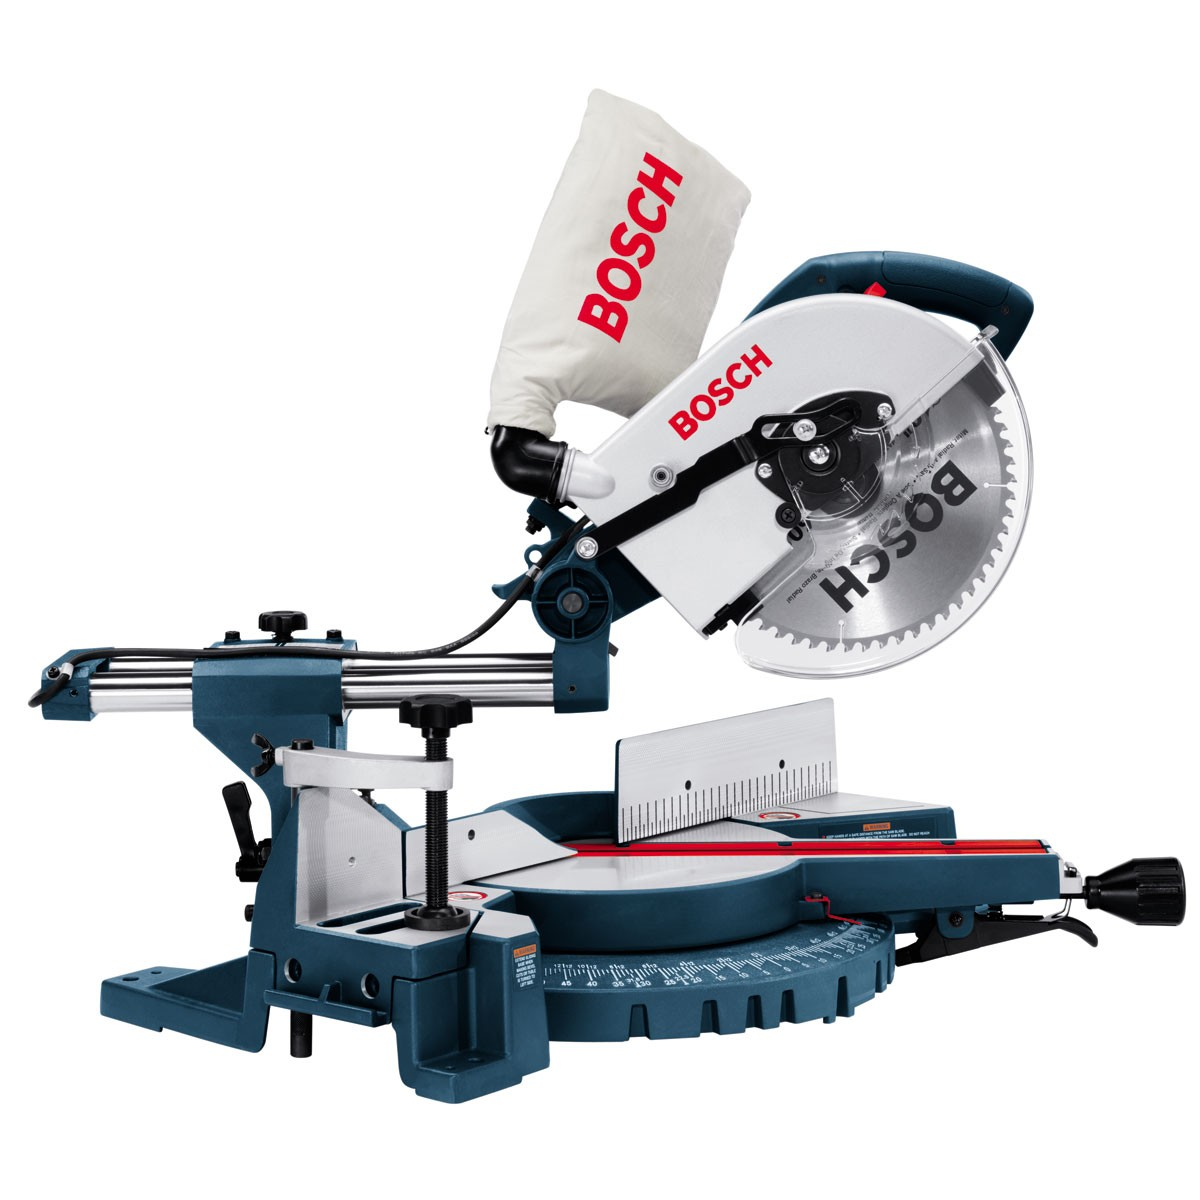 bosch gcm 10 s 10 single bevel sliding mitre saw powertool world. Black Bedroom Furniture Sets. Home Design Ideas